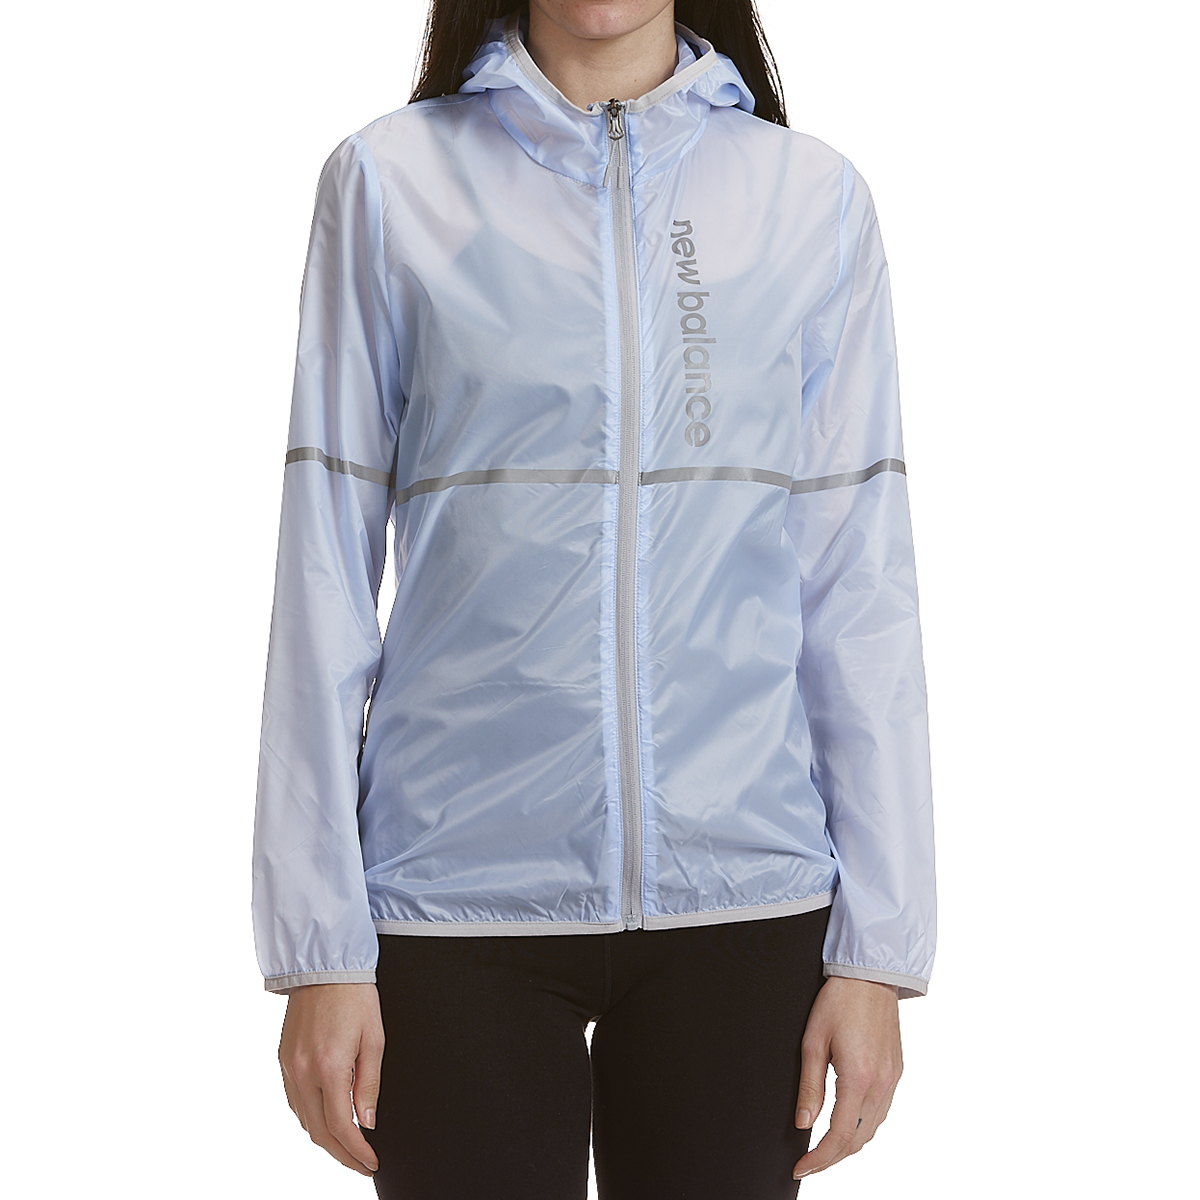 New Balance Women's Translucent Ribstop Hooded Jacket With Reflective Trim - Blue, M